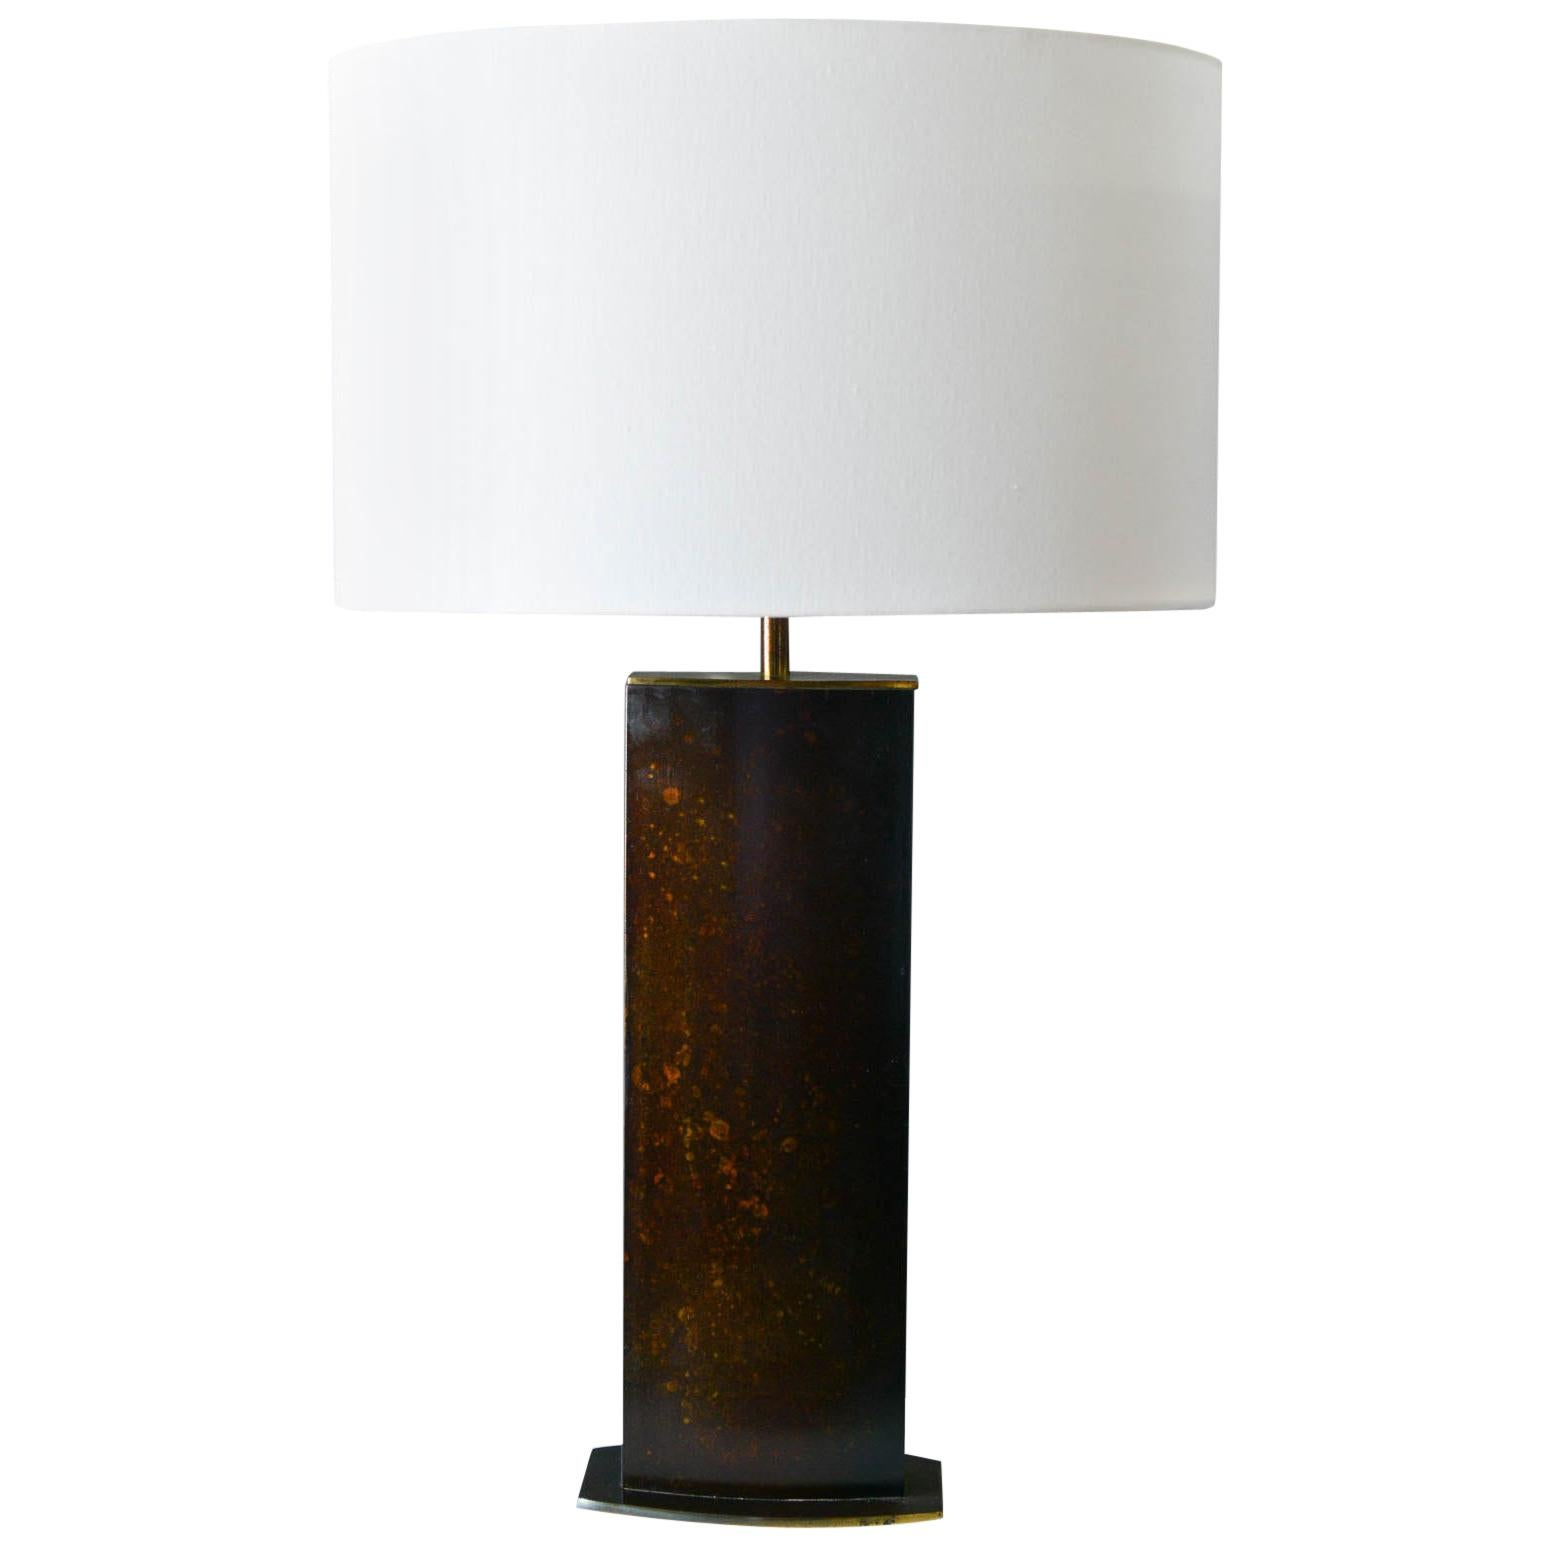 Burnished Leather and Brass Oval Table Lamp, circa 1970